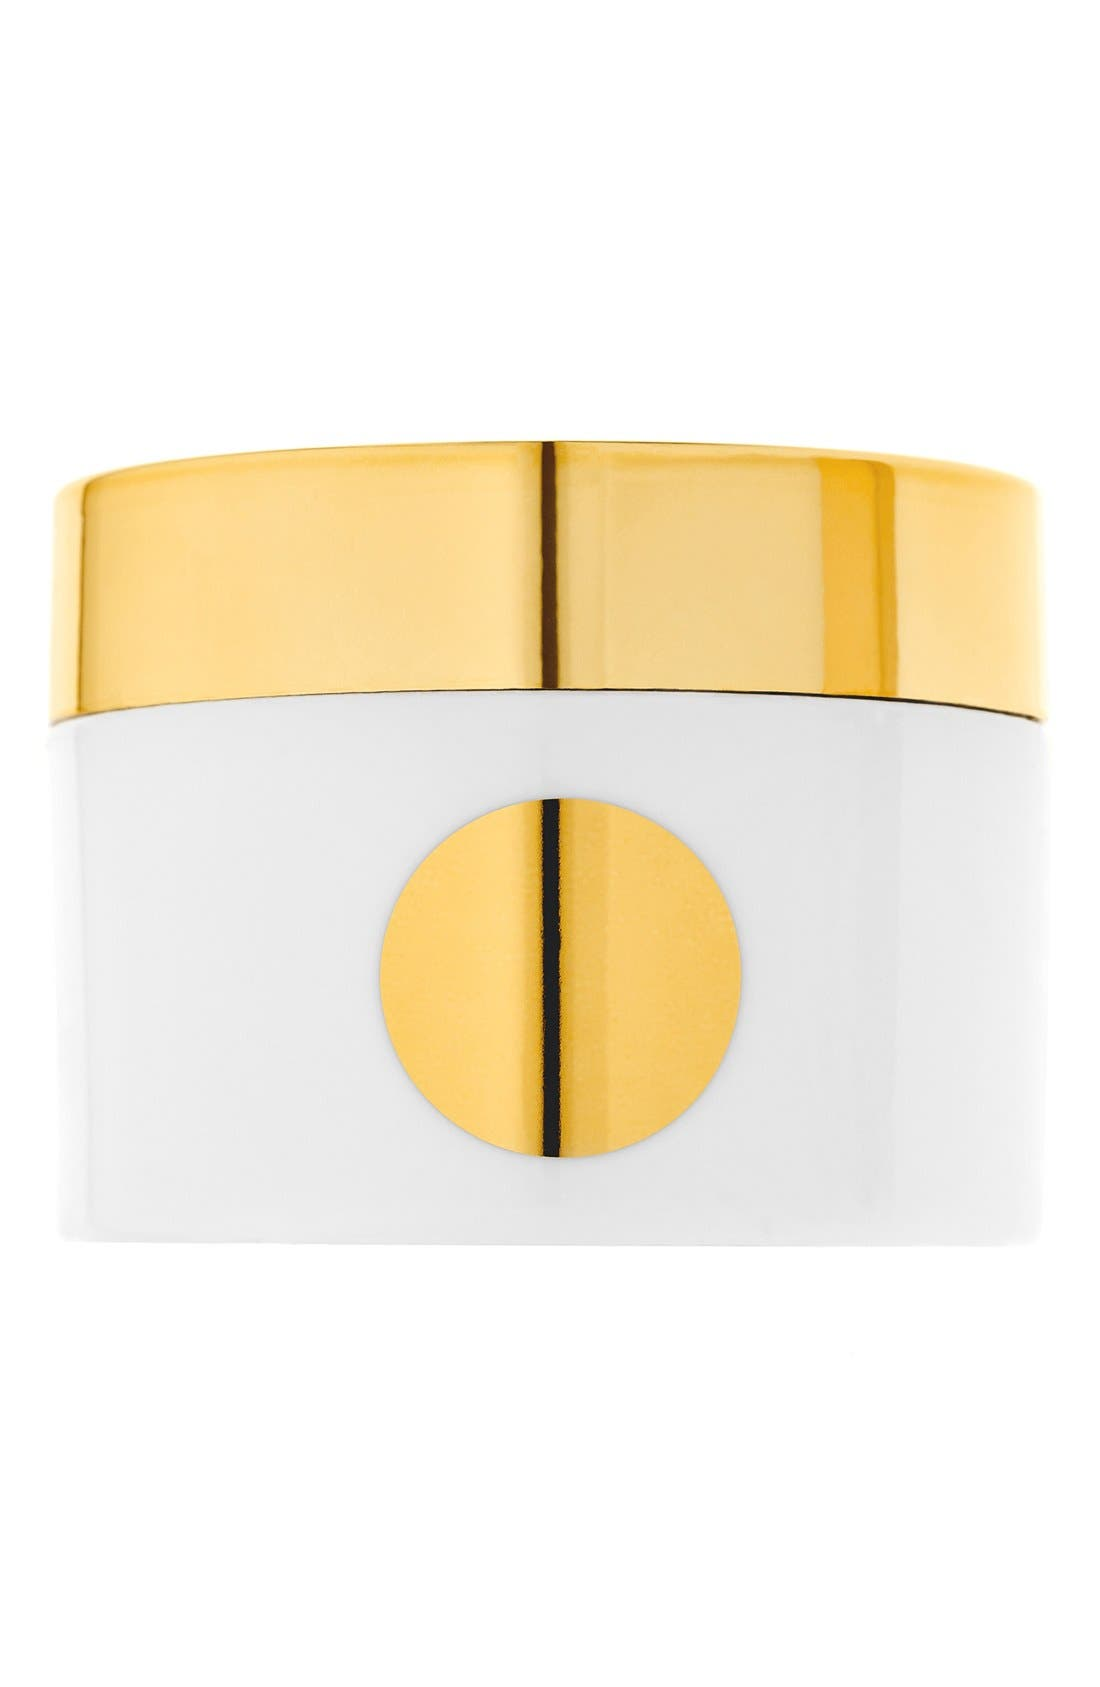 Skin Reset Restructuring Cream,                             Main thumbnail 1, color,                             NO COLOR